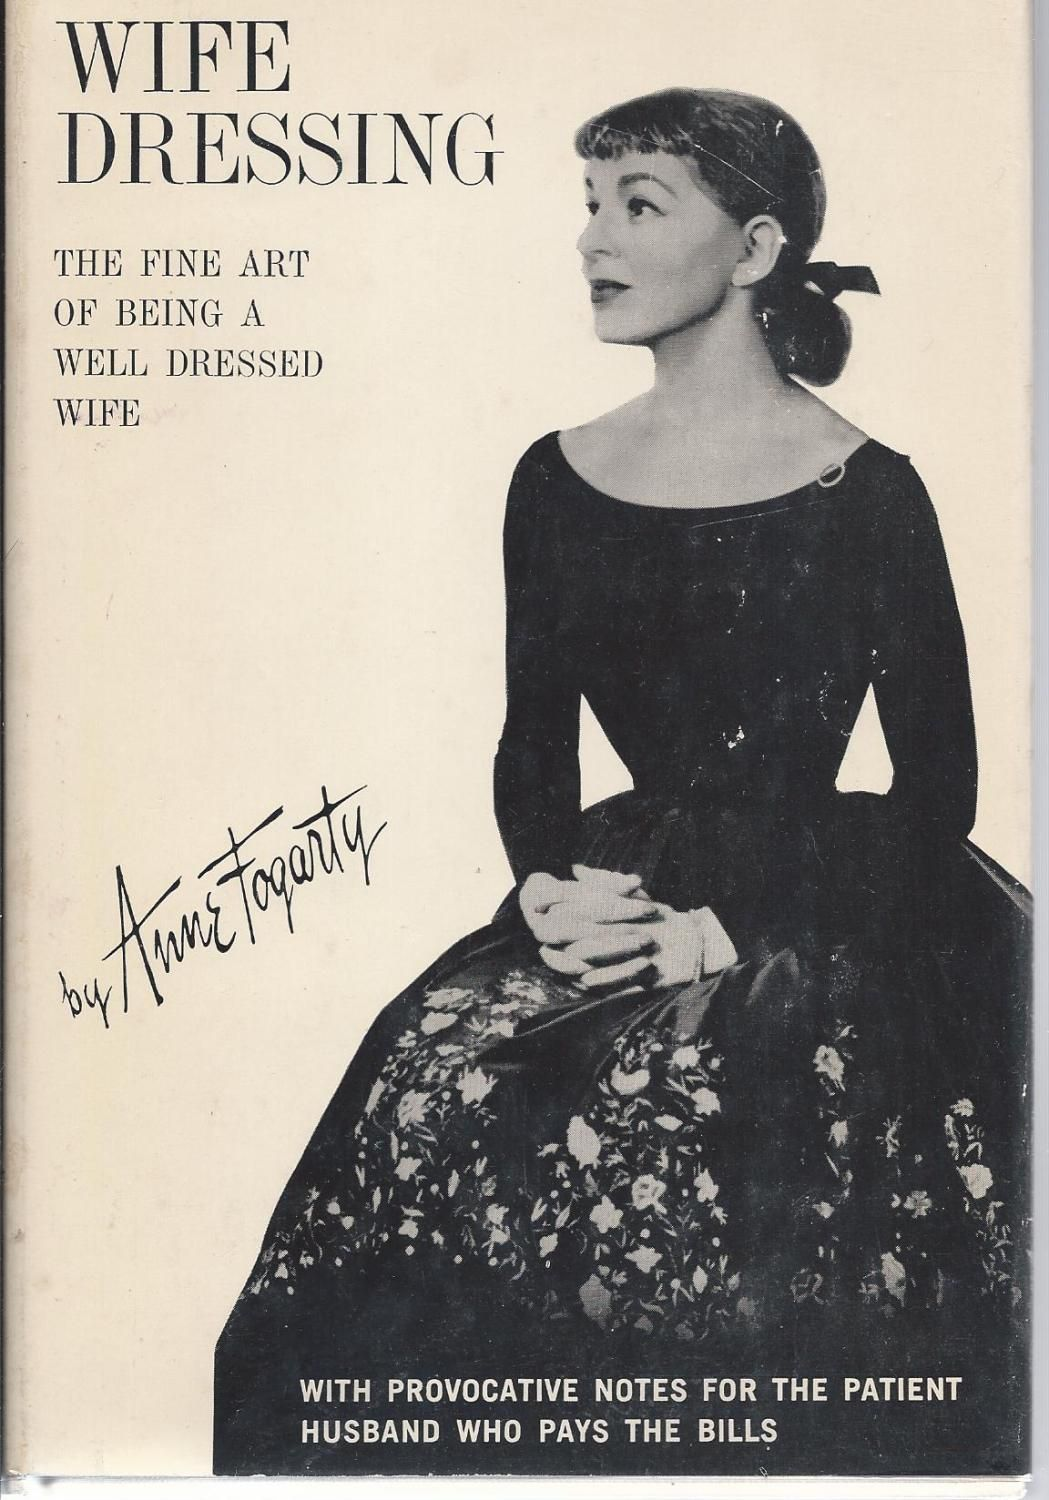 The original edition of Wife Dressing by Anne Fogarty from 1959. Sub-title is The Fine Art of Being a Well Dressed Wife.